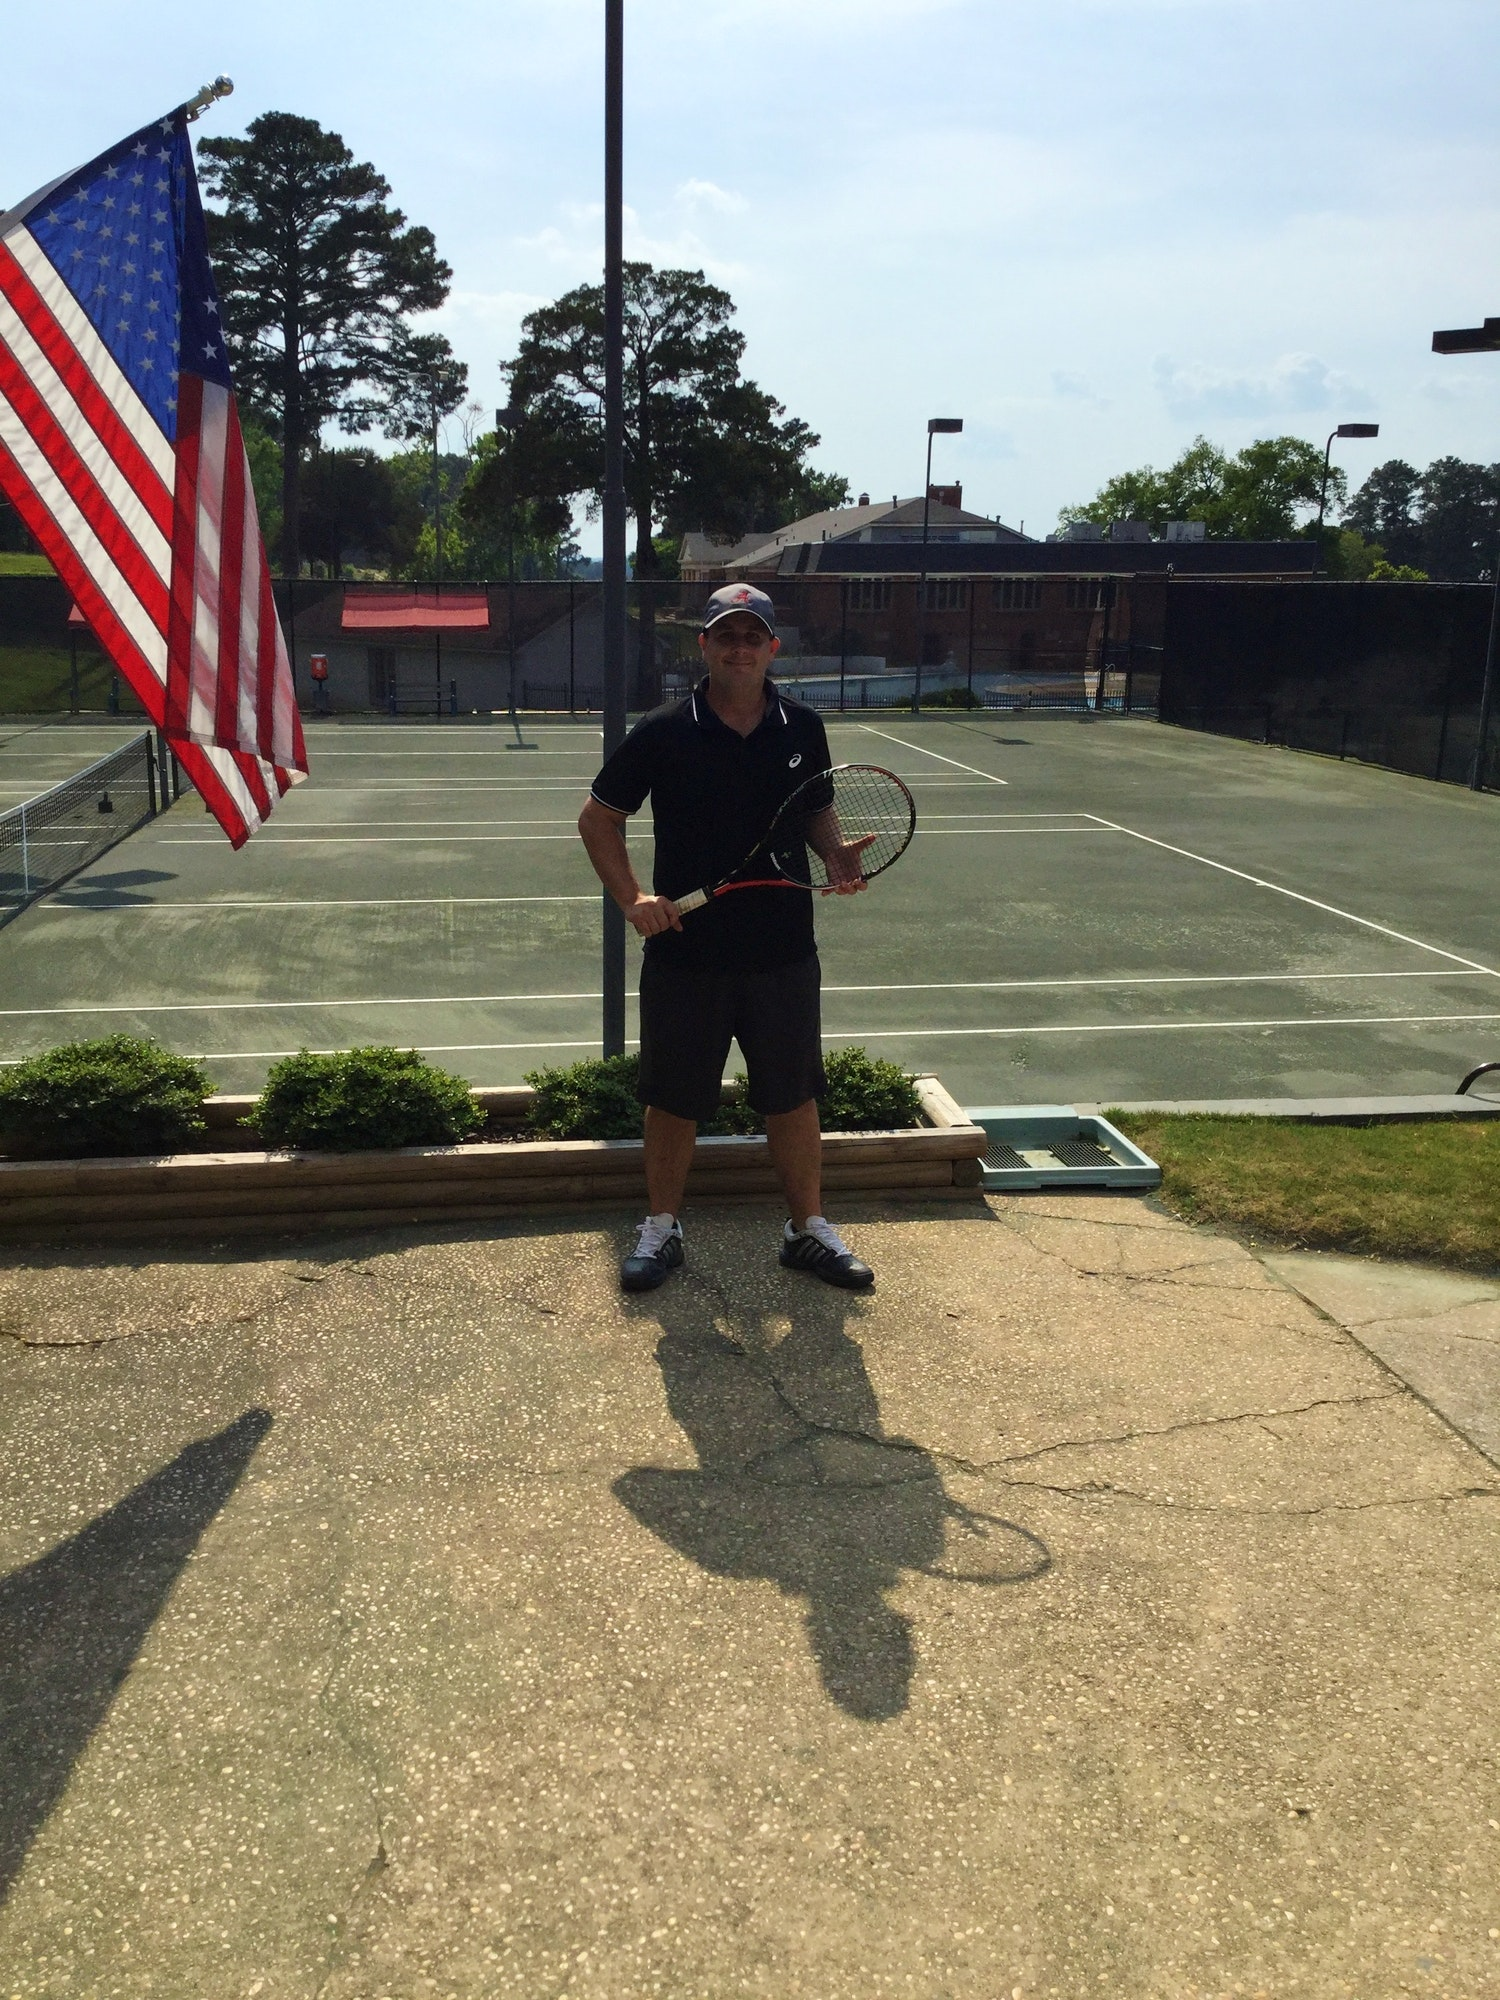 Tyler M. teaches tennis lessons in Northport, AL